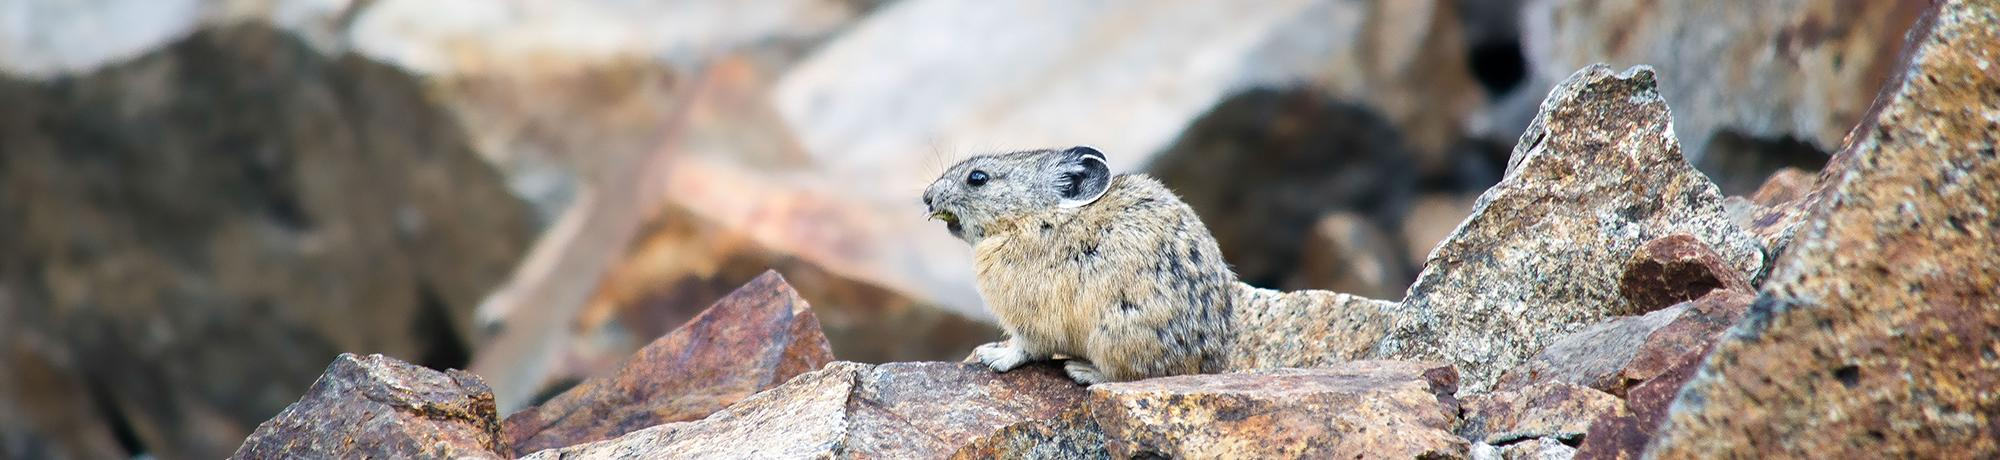 california pika